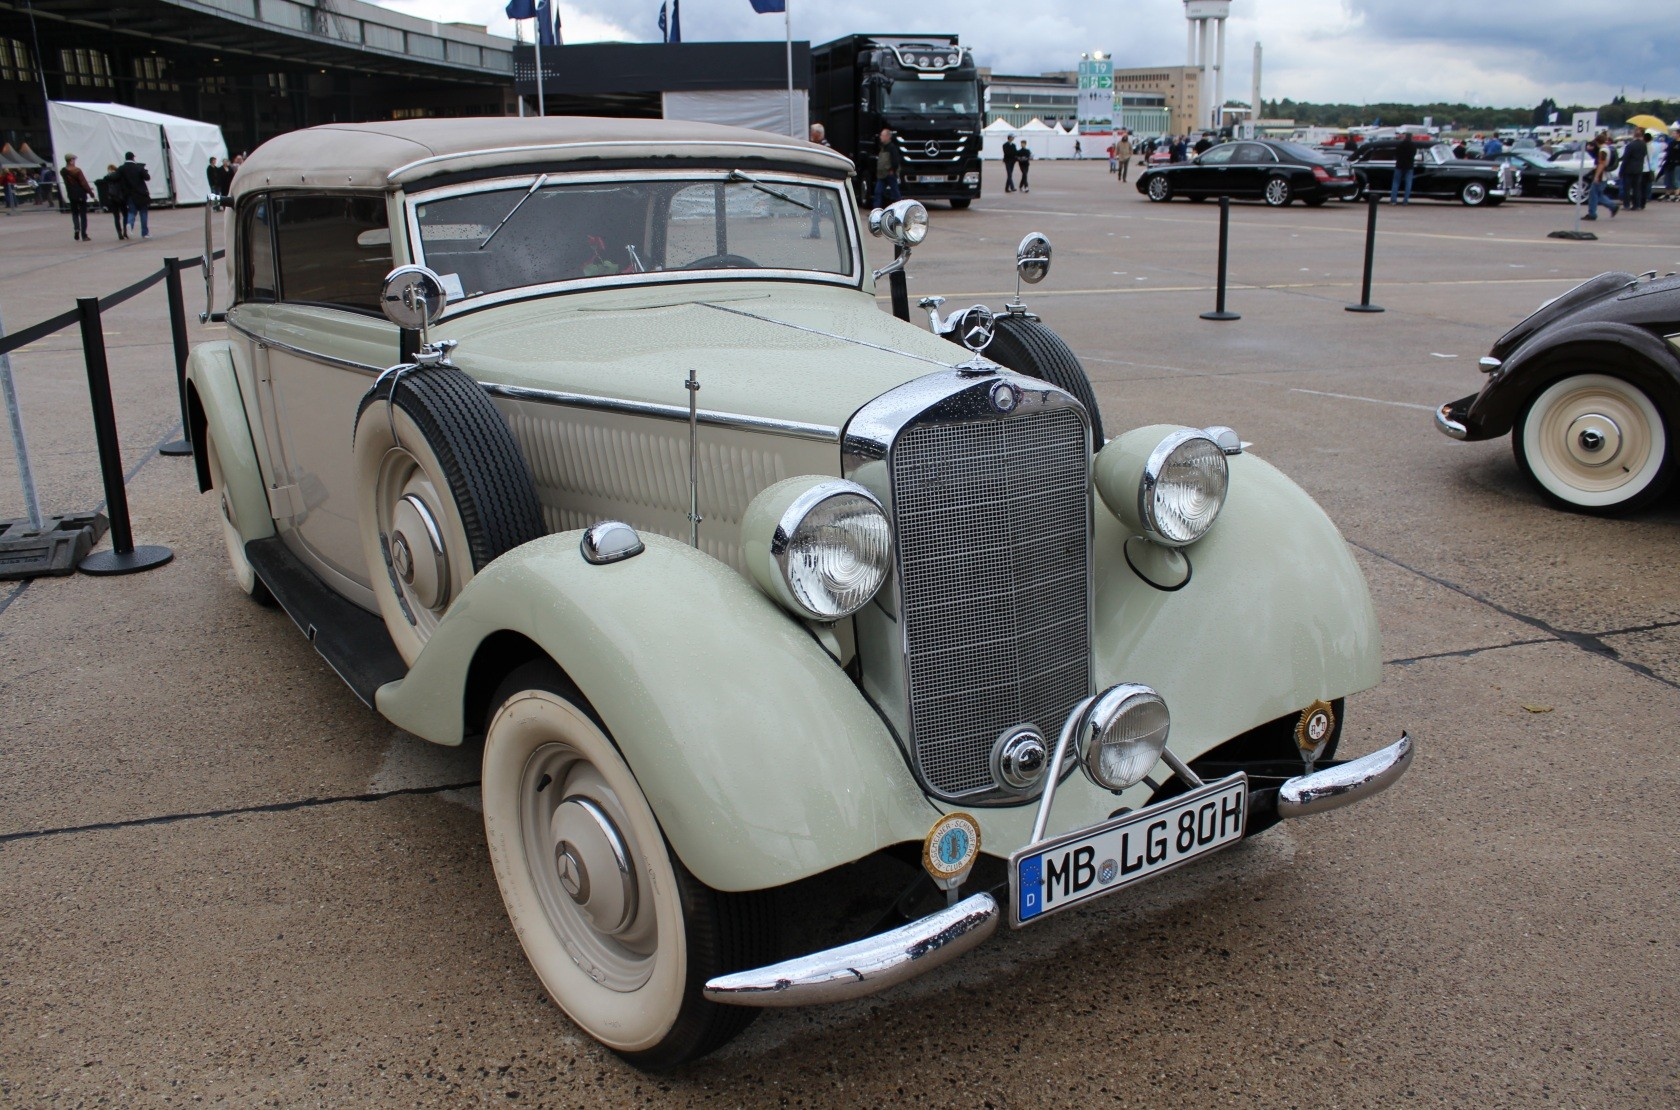 Mercedes-Benz & Friends - 125 Jahre Automobil in Tempelhof XXXVI